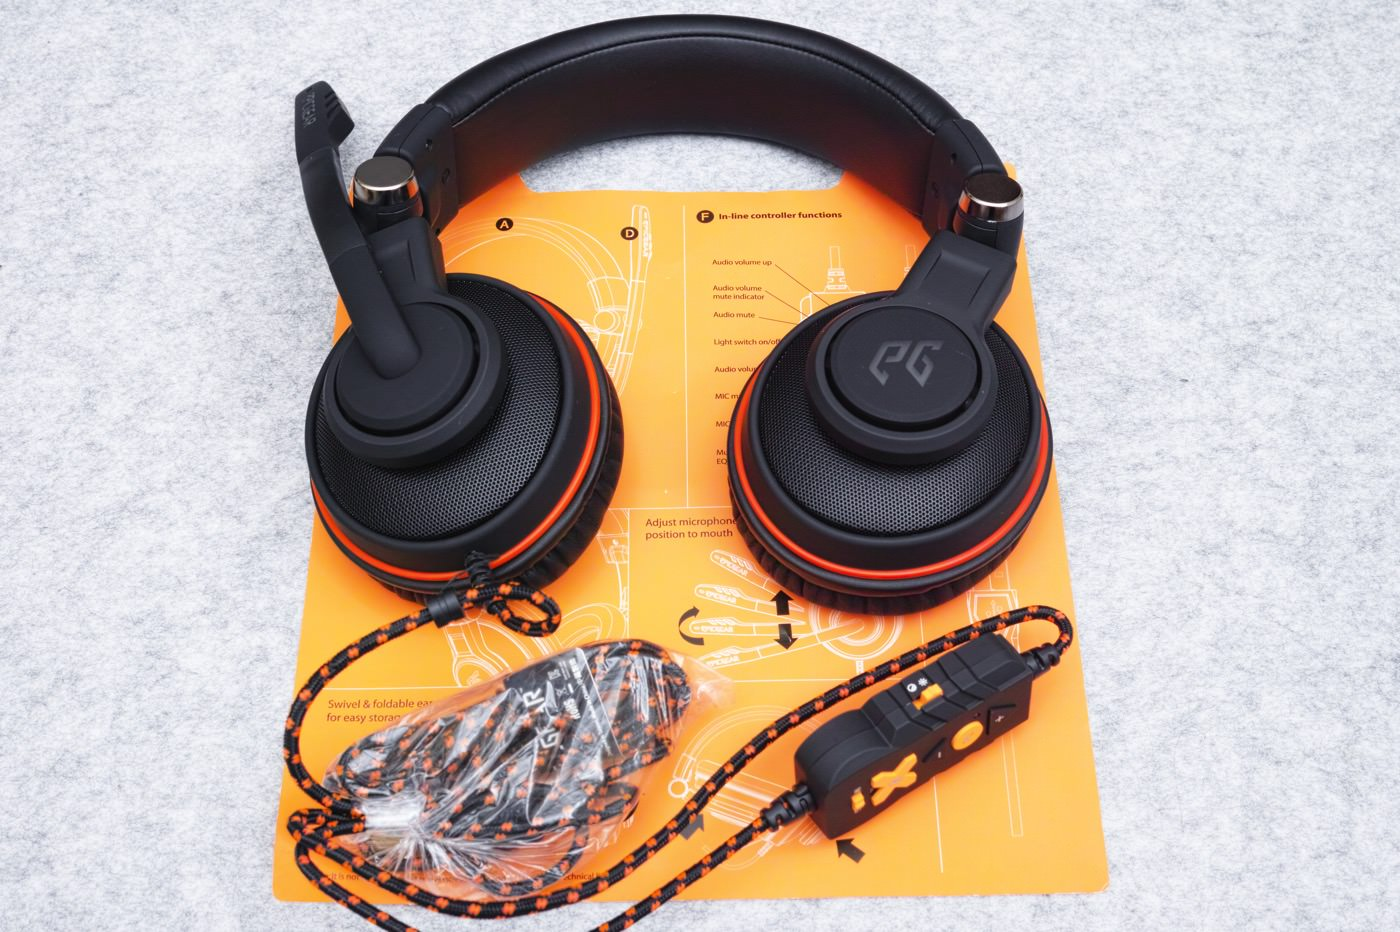 Epicgear sonorouz x gaming headset review 00003 1